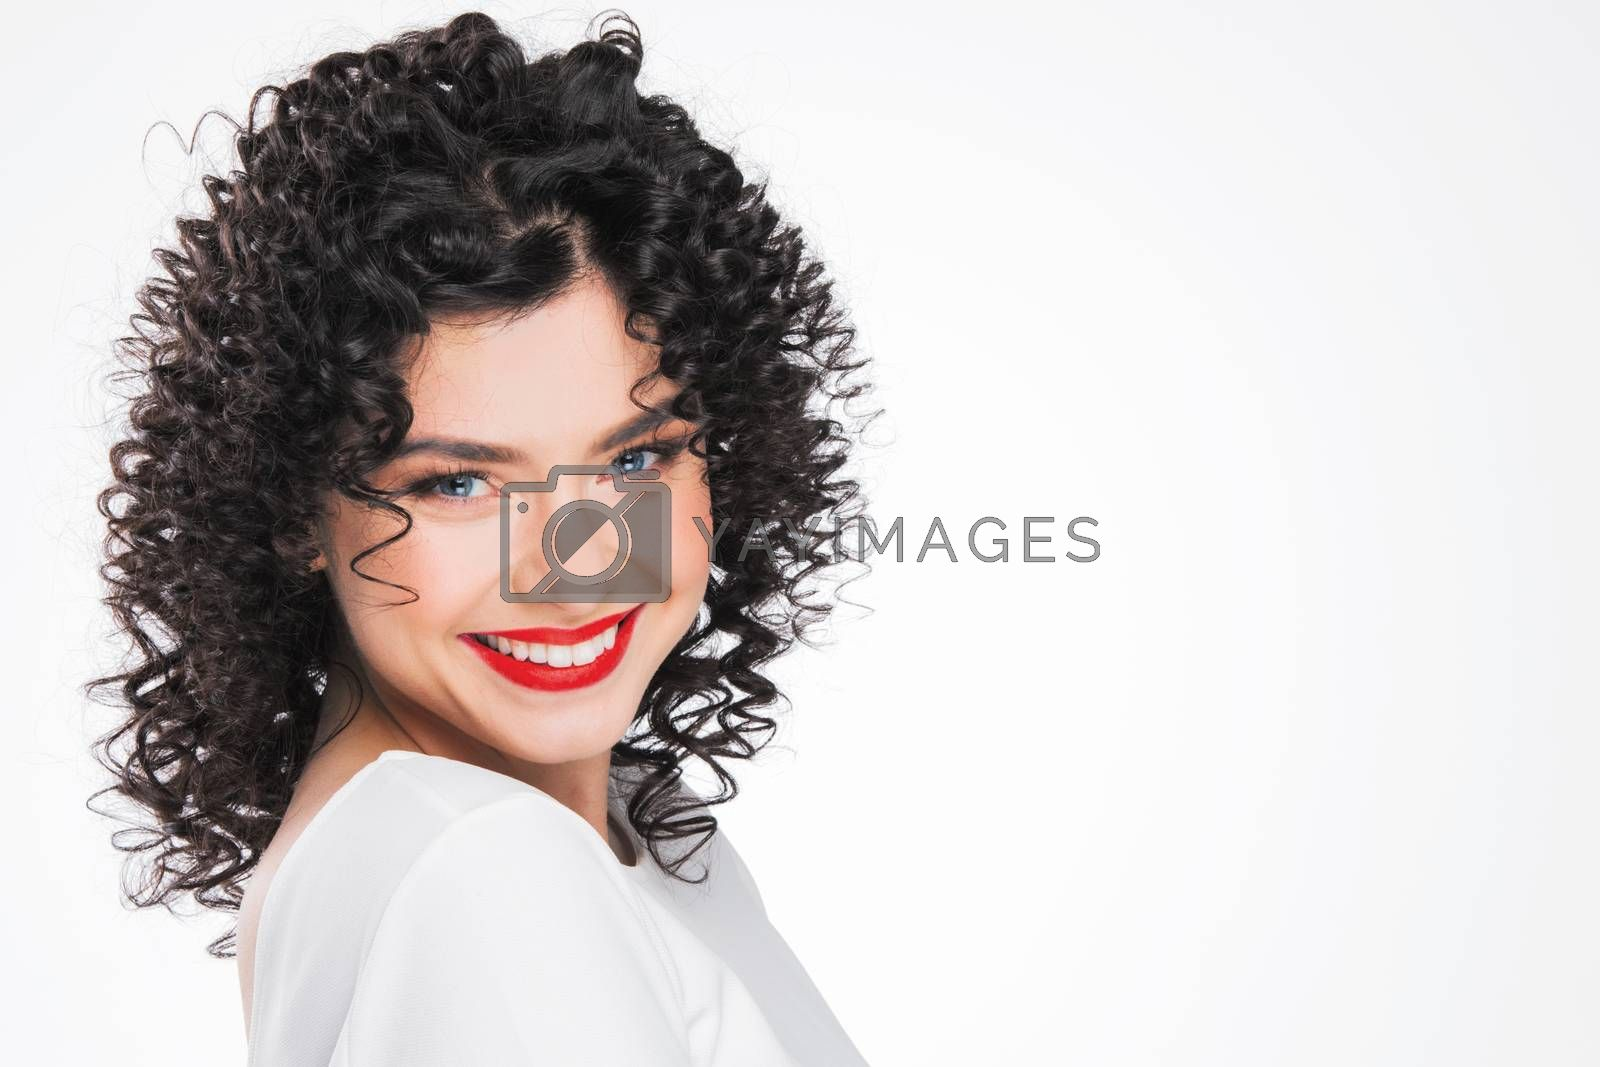 Beauty young woman portrait isolated on white background. Girl with black curly hair. Hairstyle. Haircut